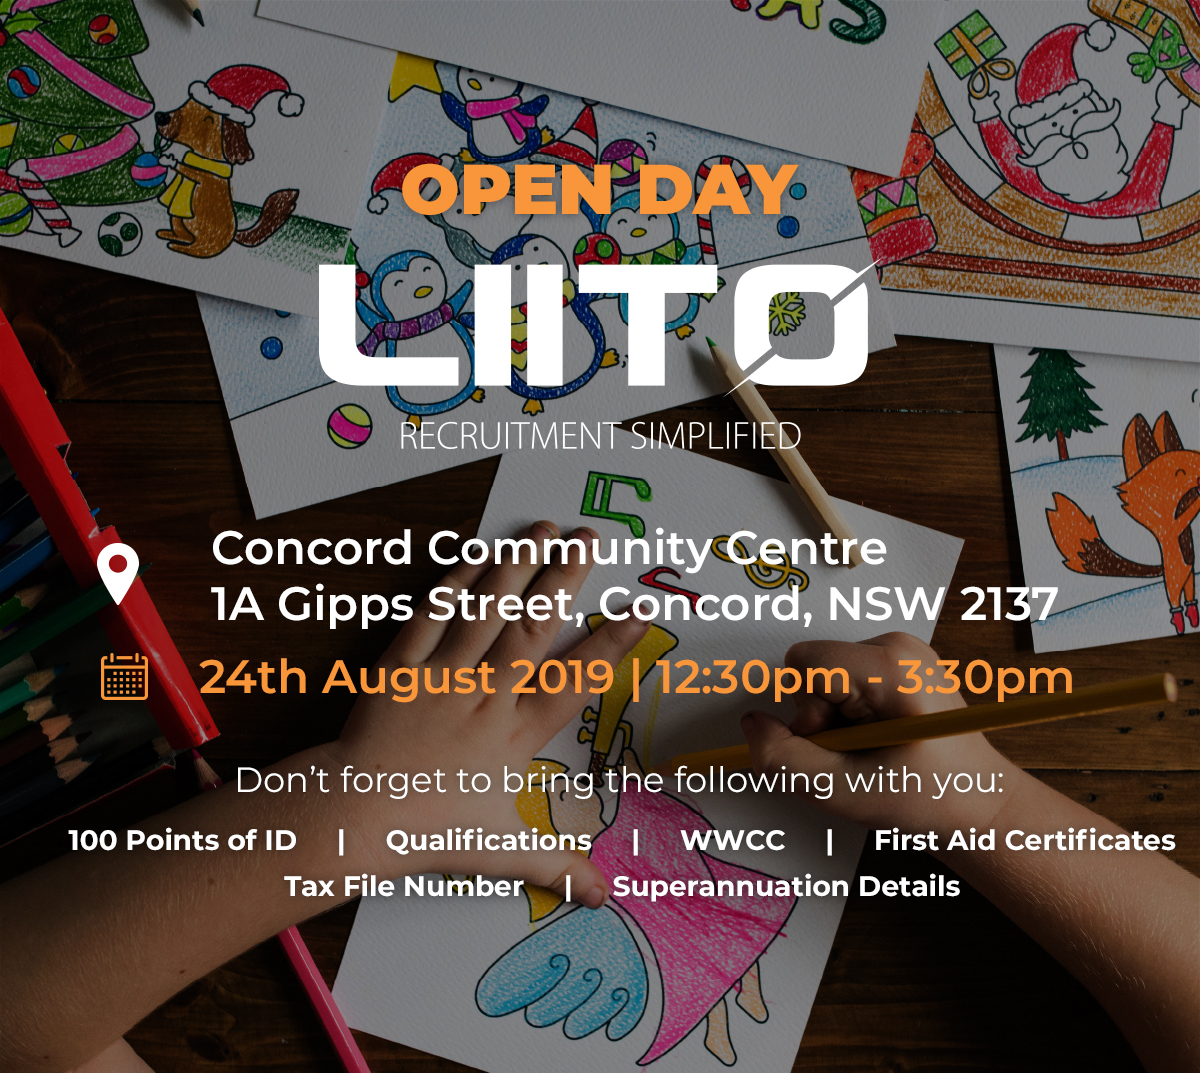 Liito Open Day